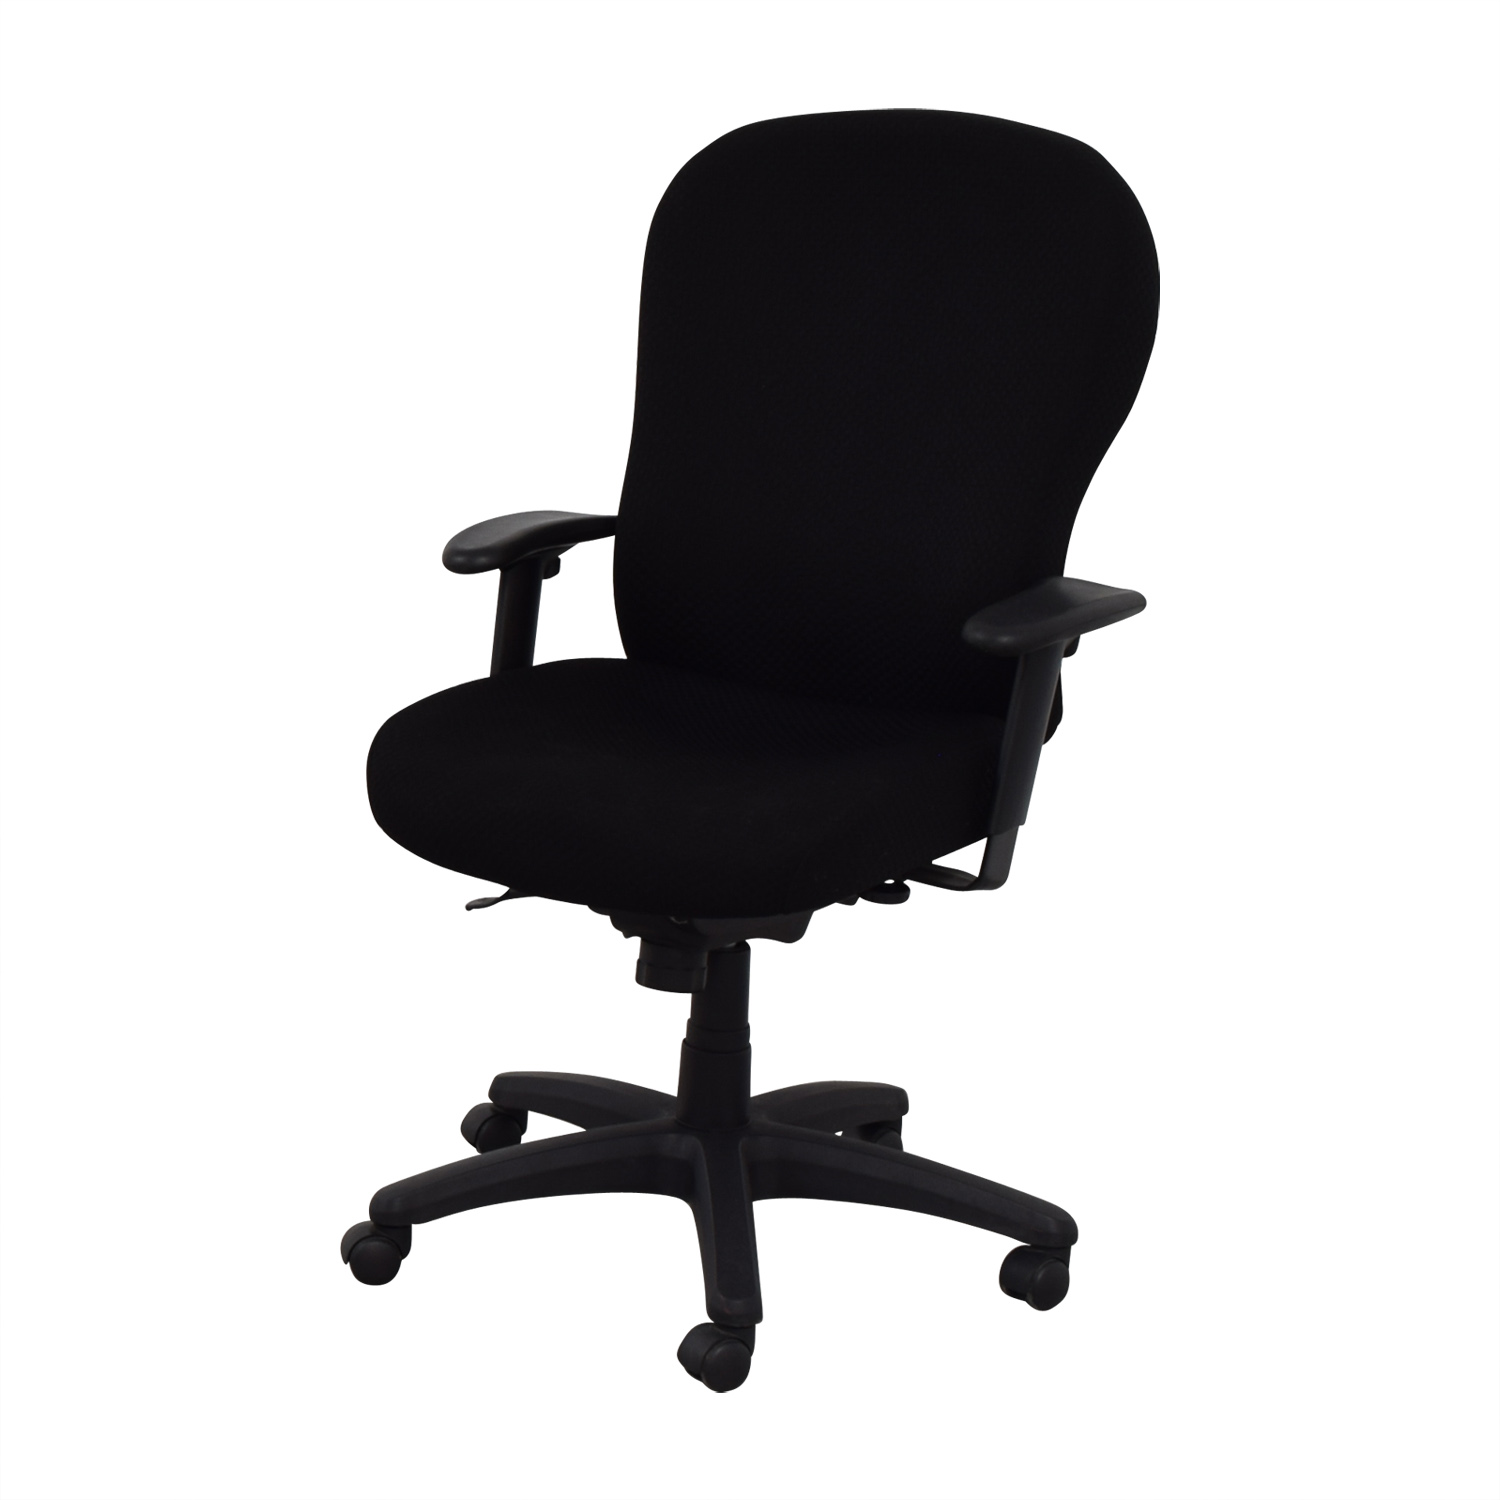 85 Off Tempur Pedic Tempur Pedic Desk Chair Chairs